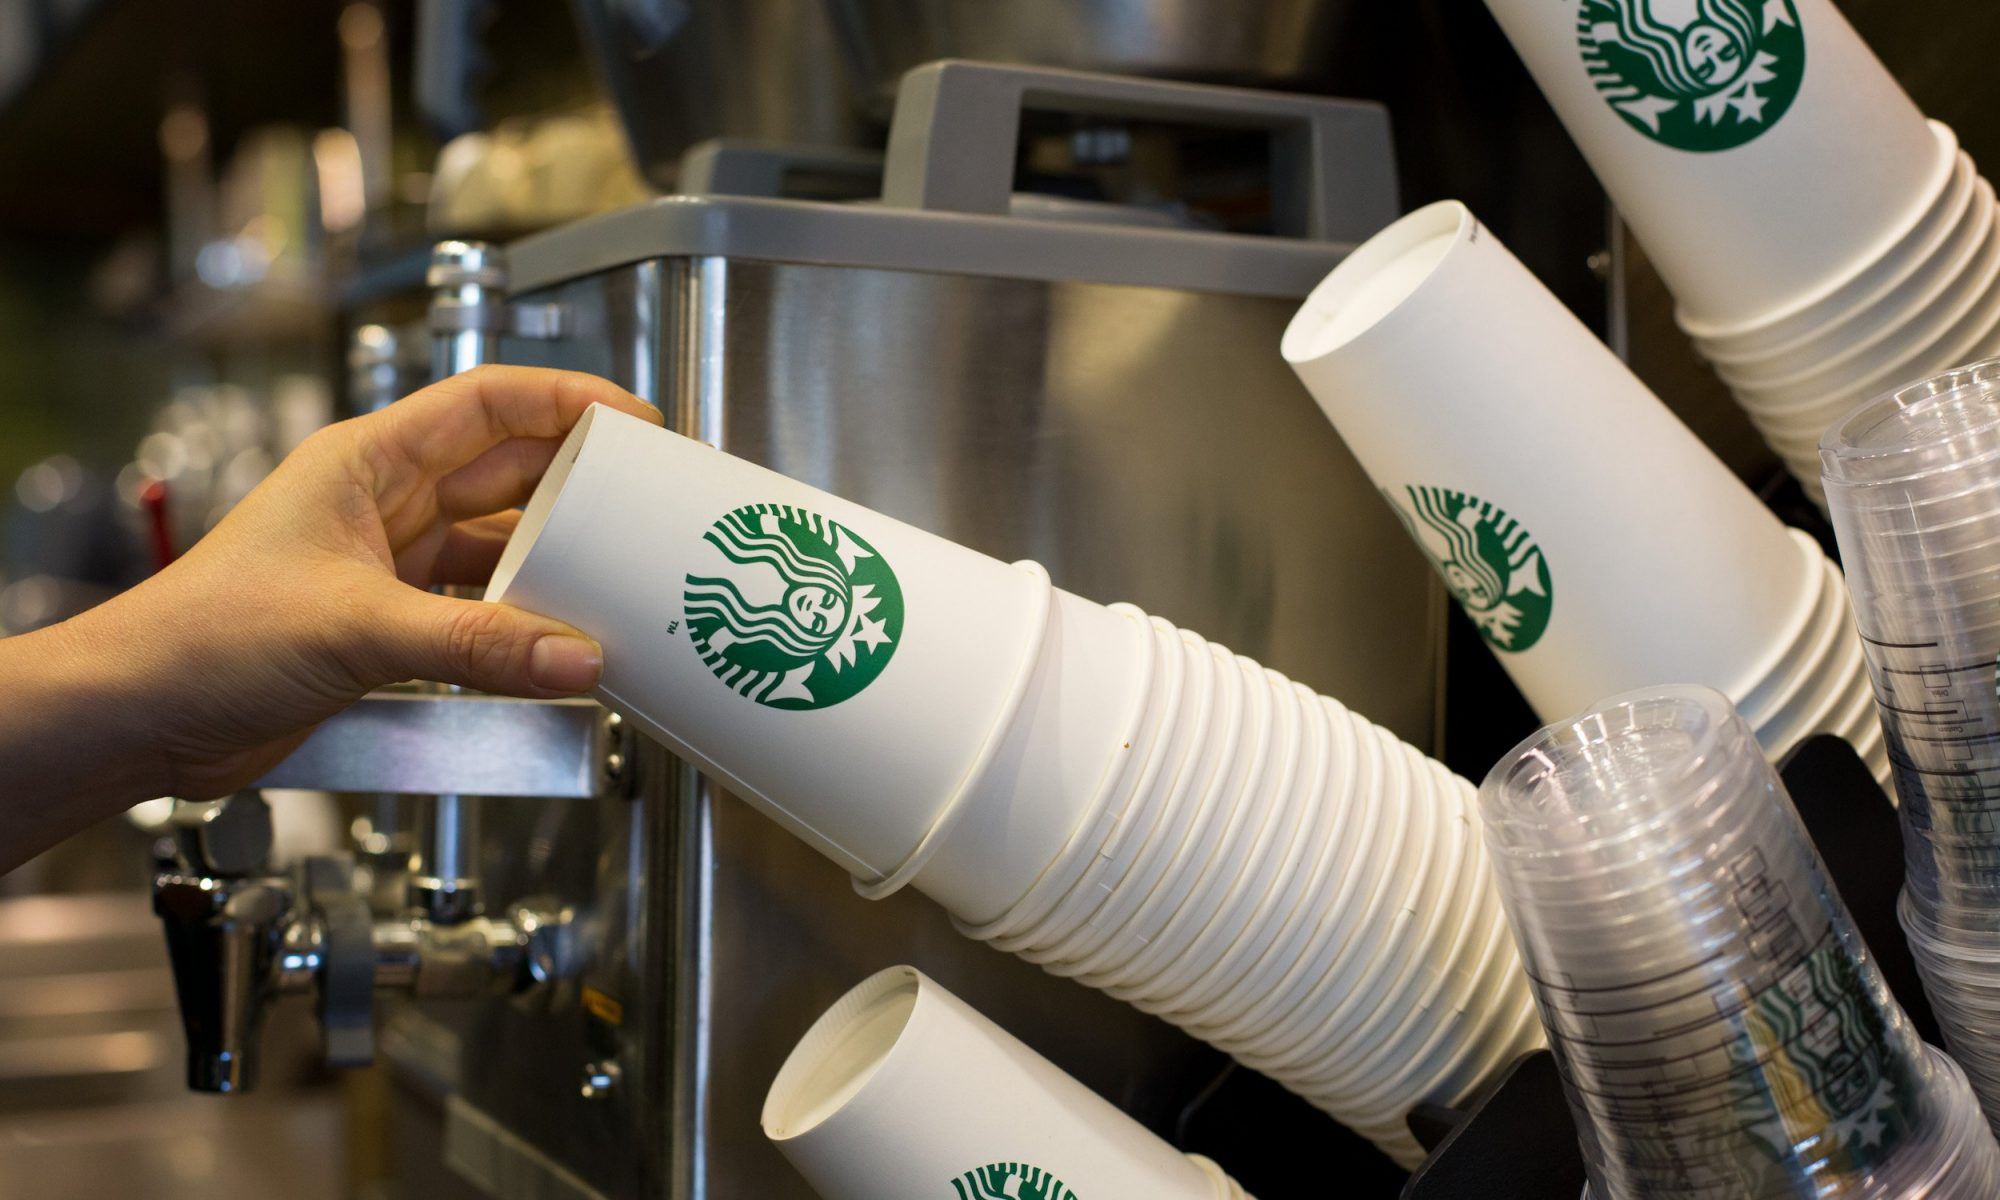 EC: The Real Reason Why Starbucks Uses Tall, Grande, and Venti